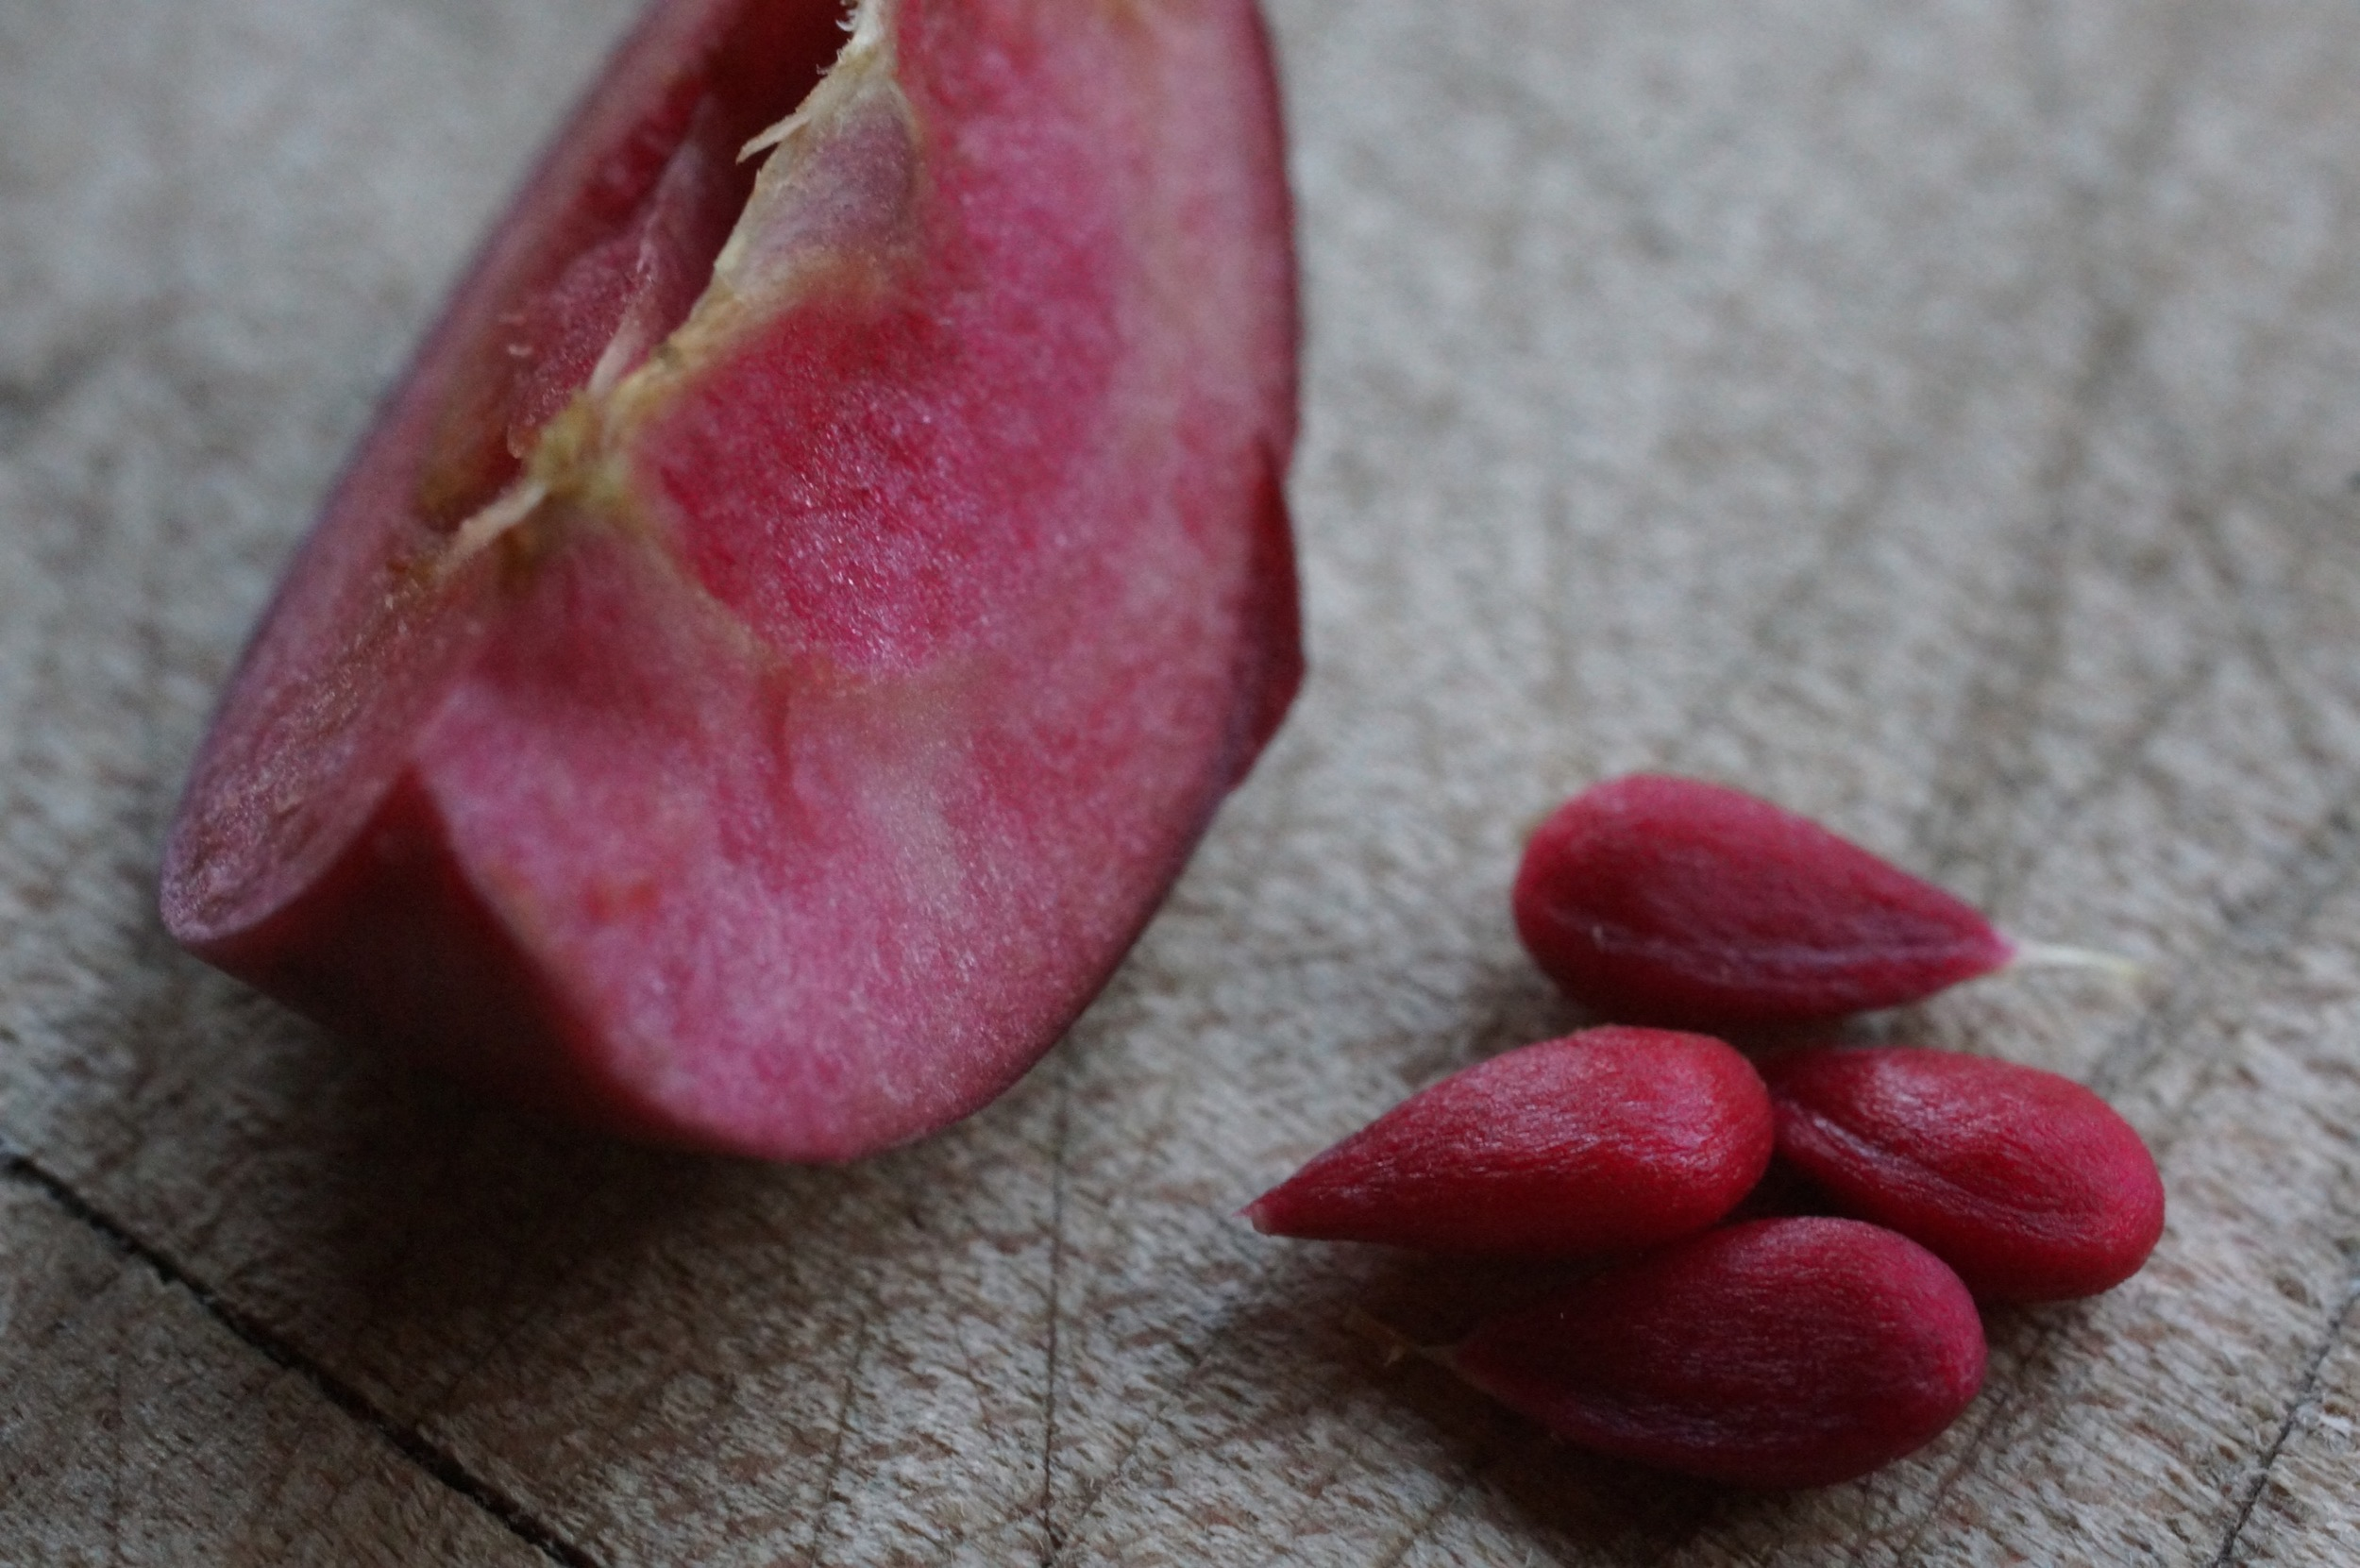 Maypole, red apple and red immature seeds